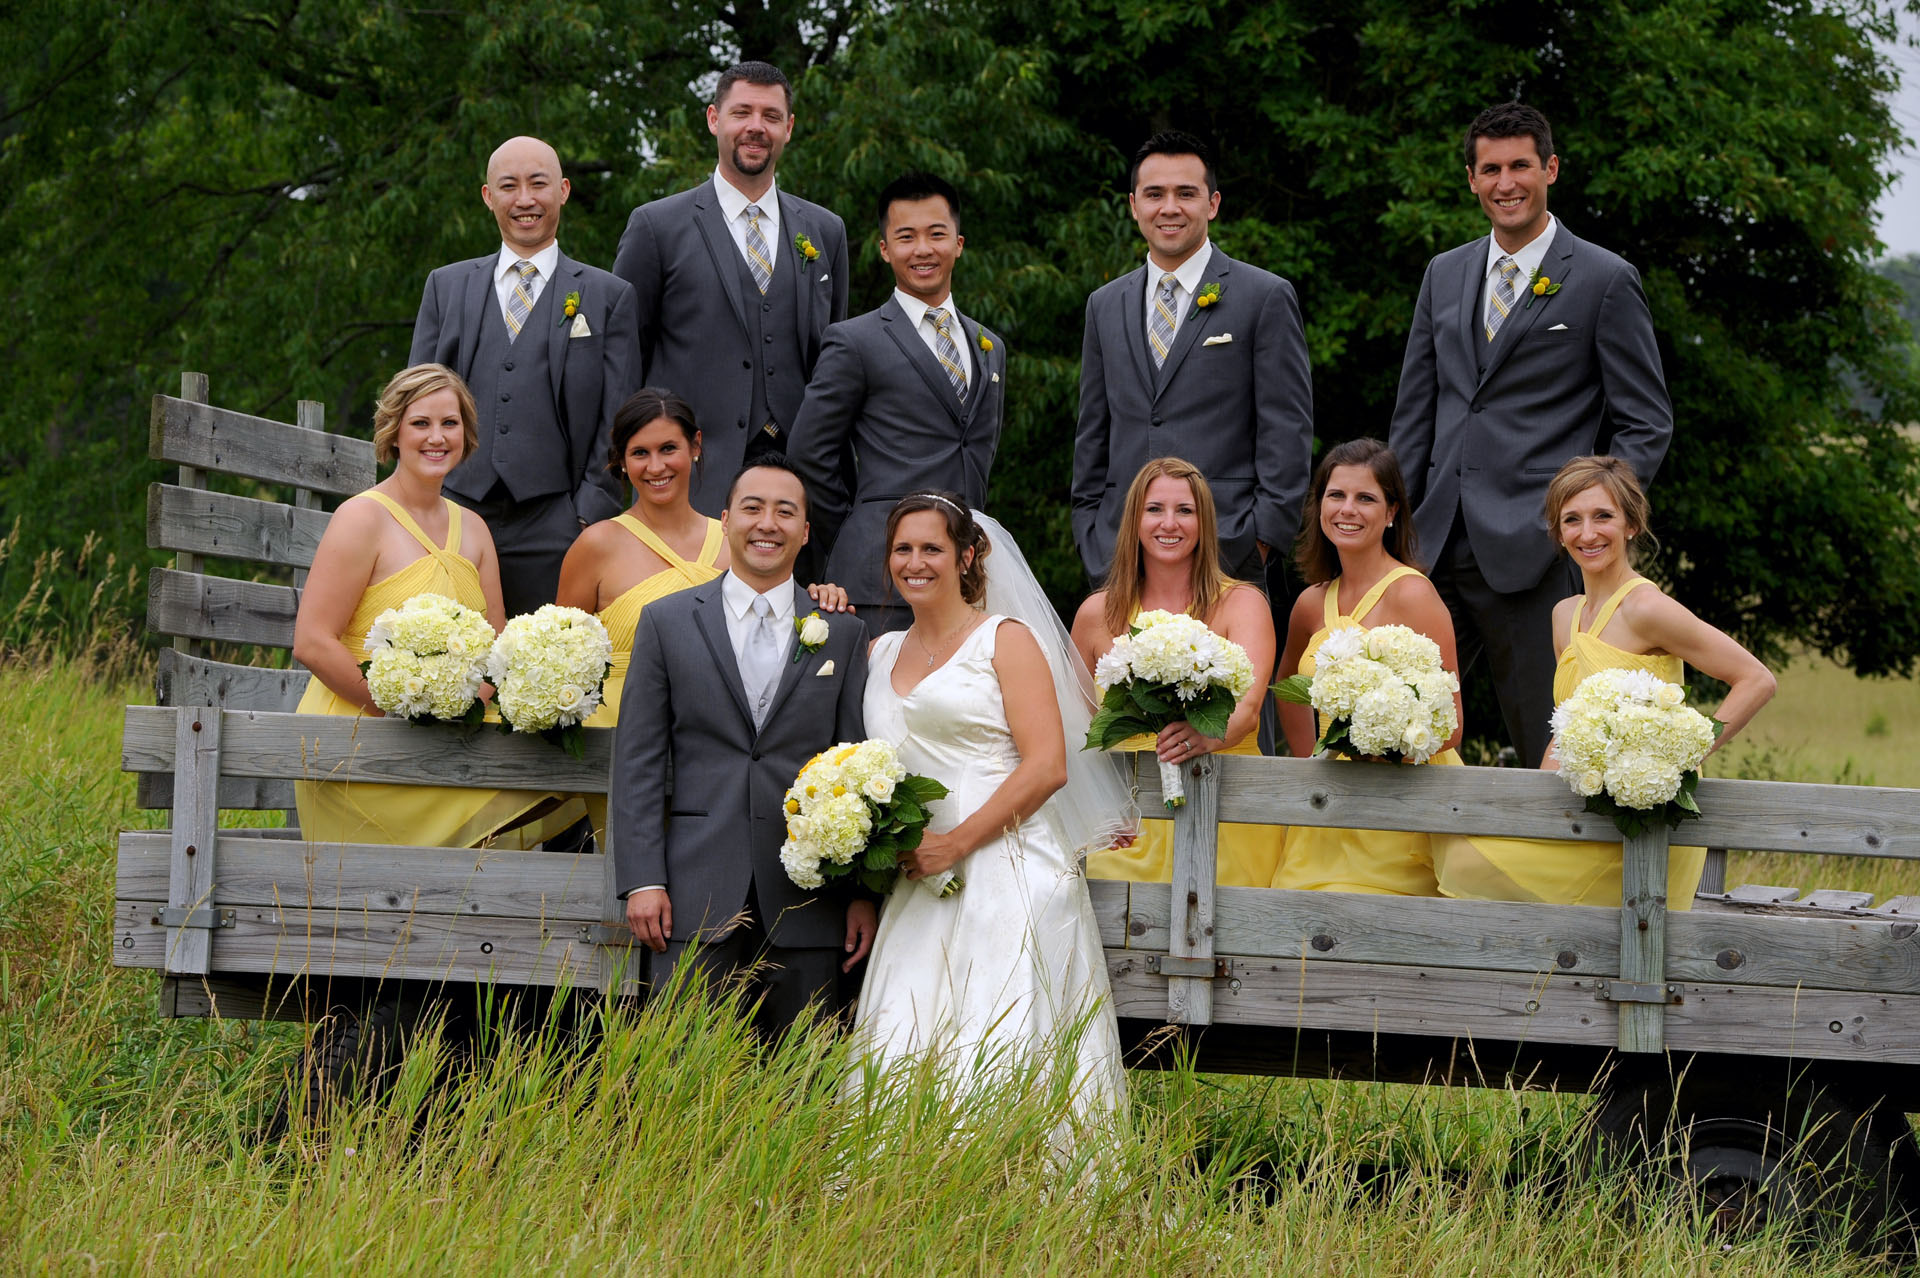 Pine Trace Golf Club wedding photographer's photo of the bridal party goofing around in Troy, Michigan.